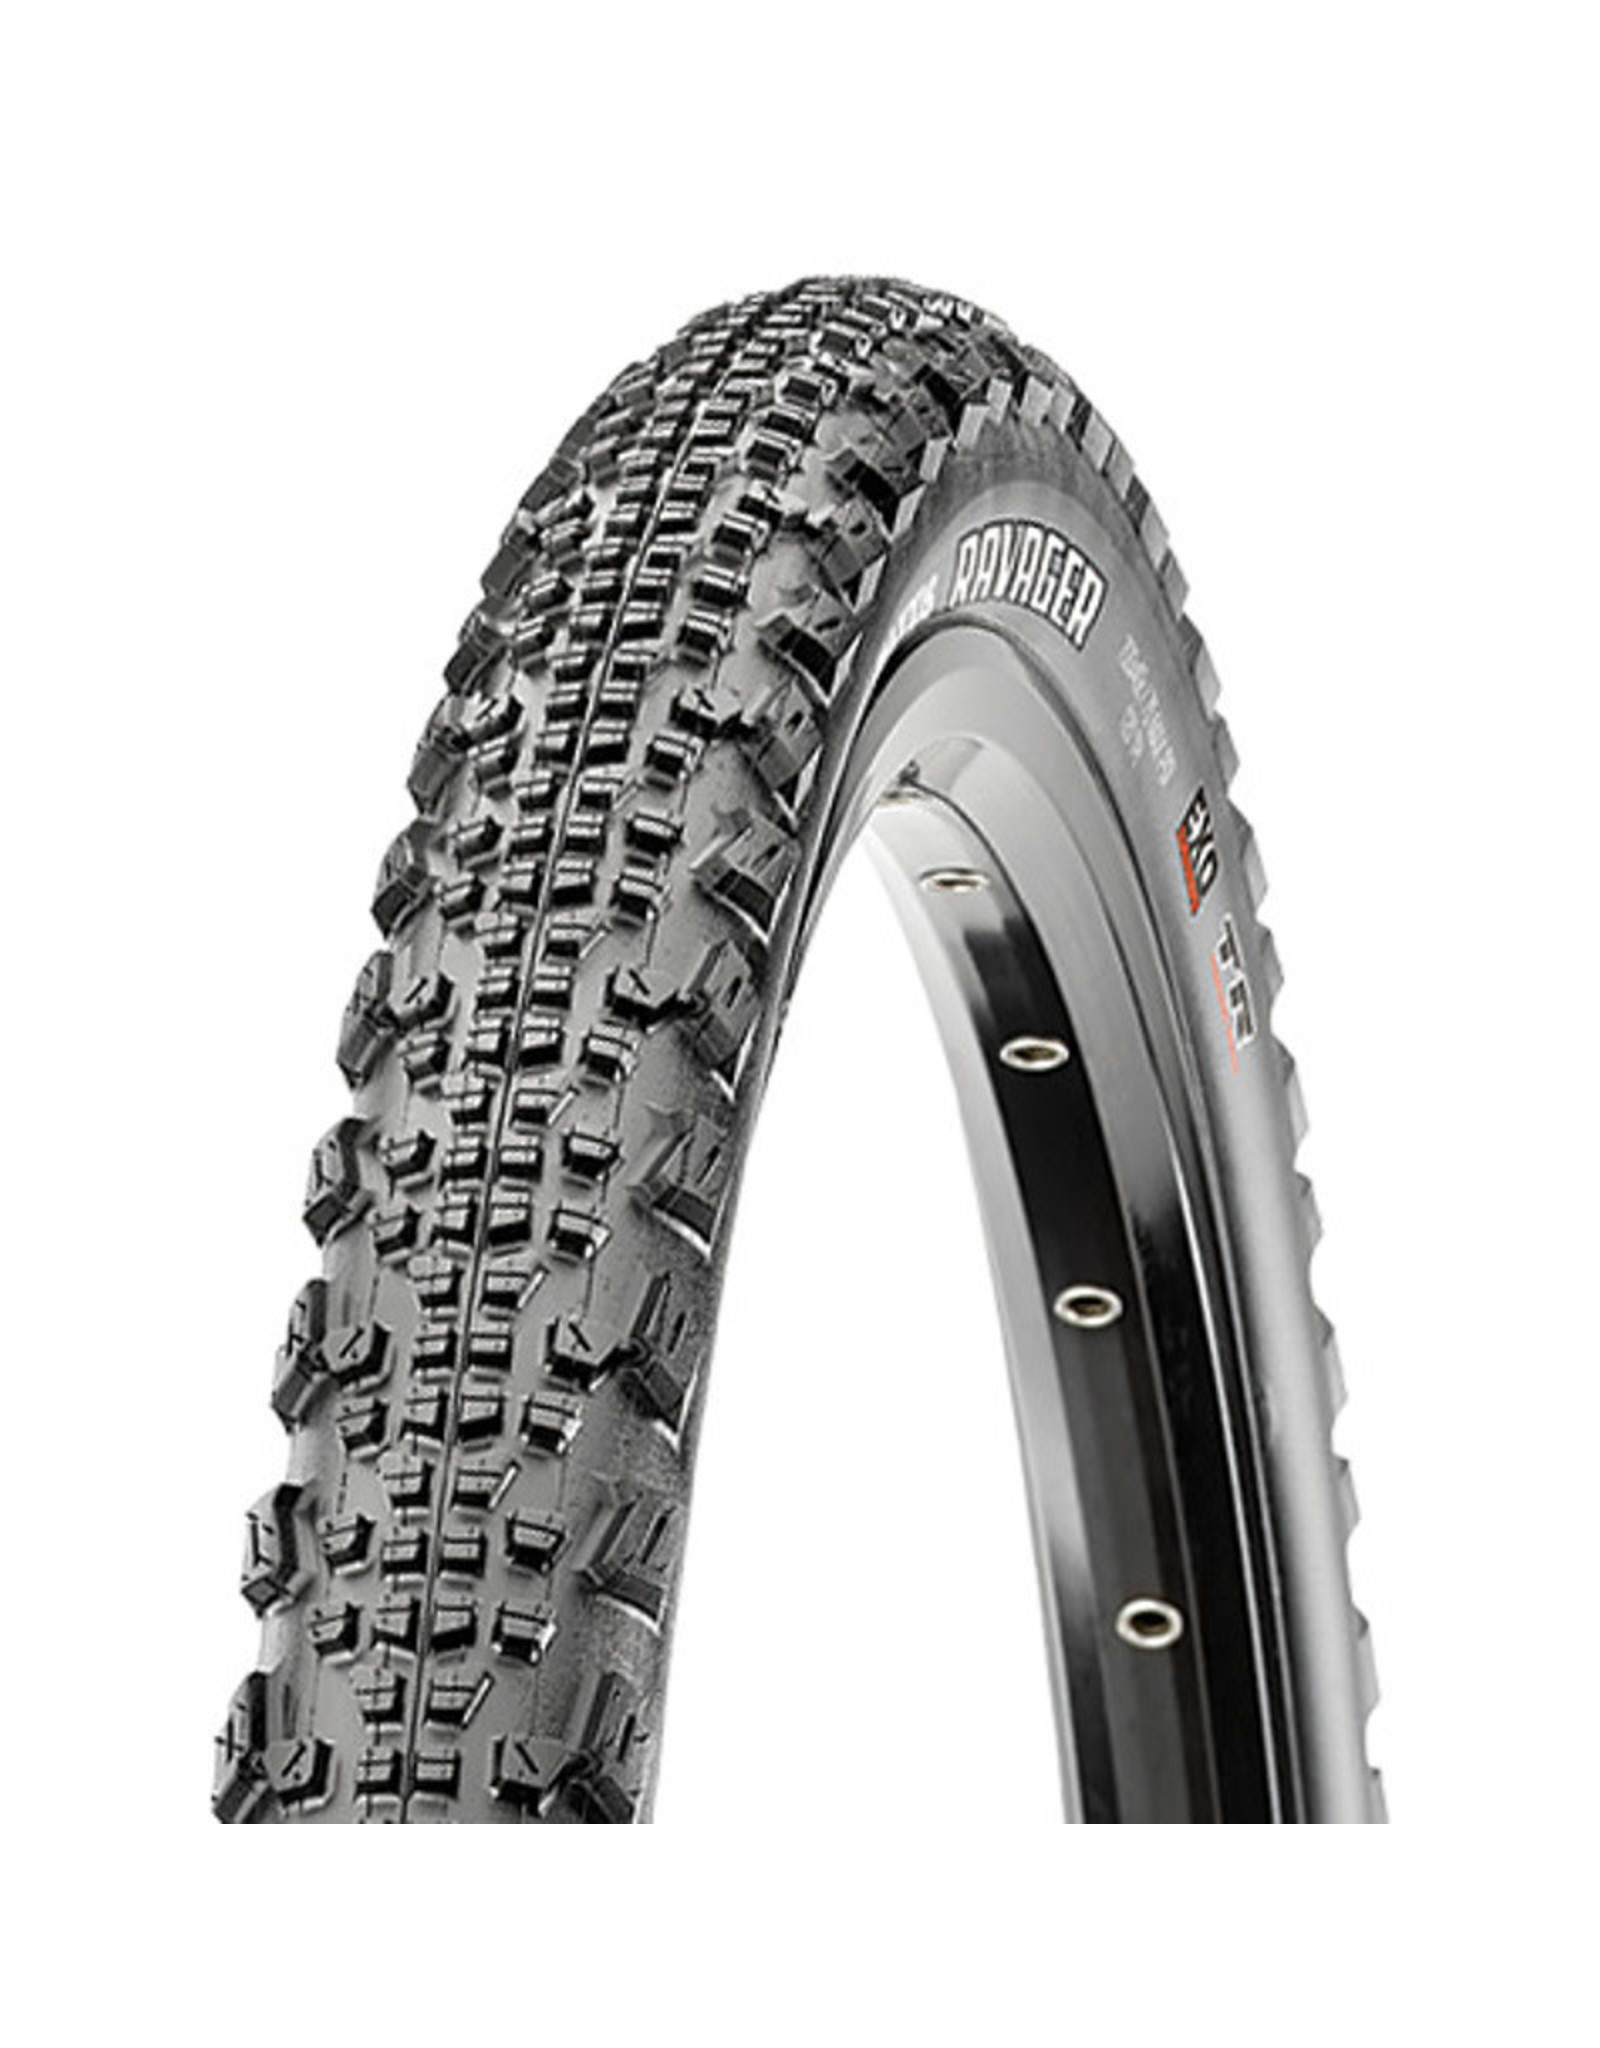 Maxxis Maxxis Ravager Tire - 700 x 40, Tubeless, Folding, Black, Dual, SilkShield